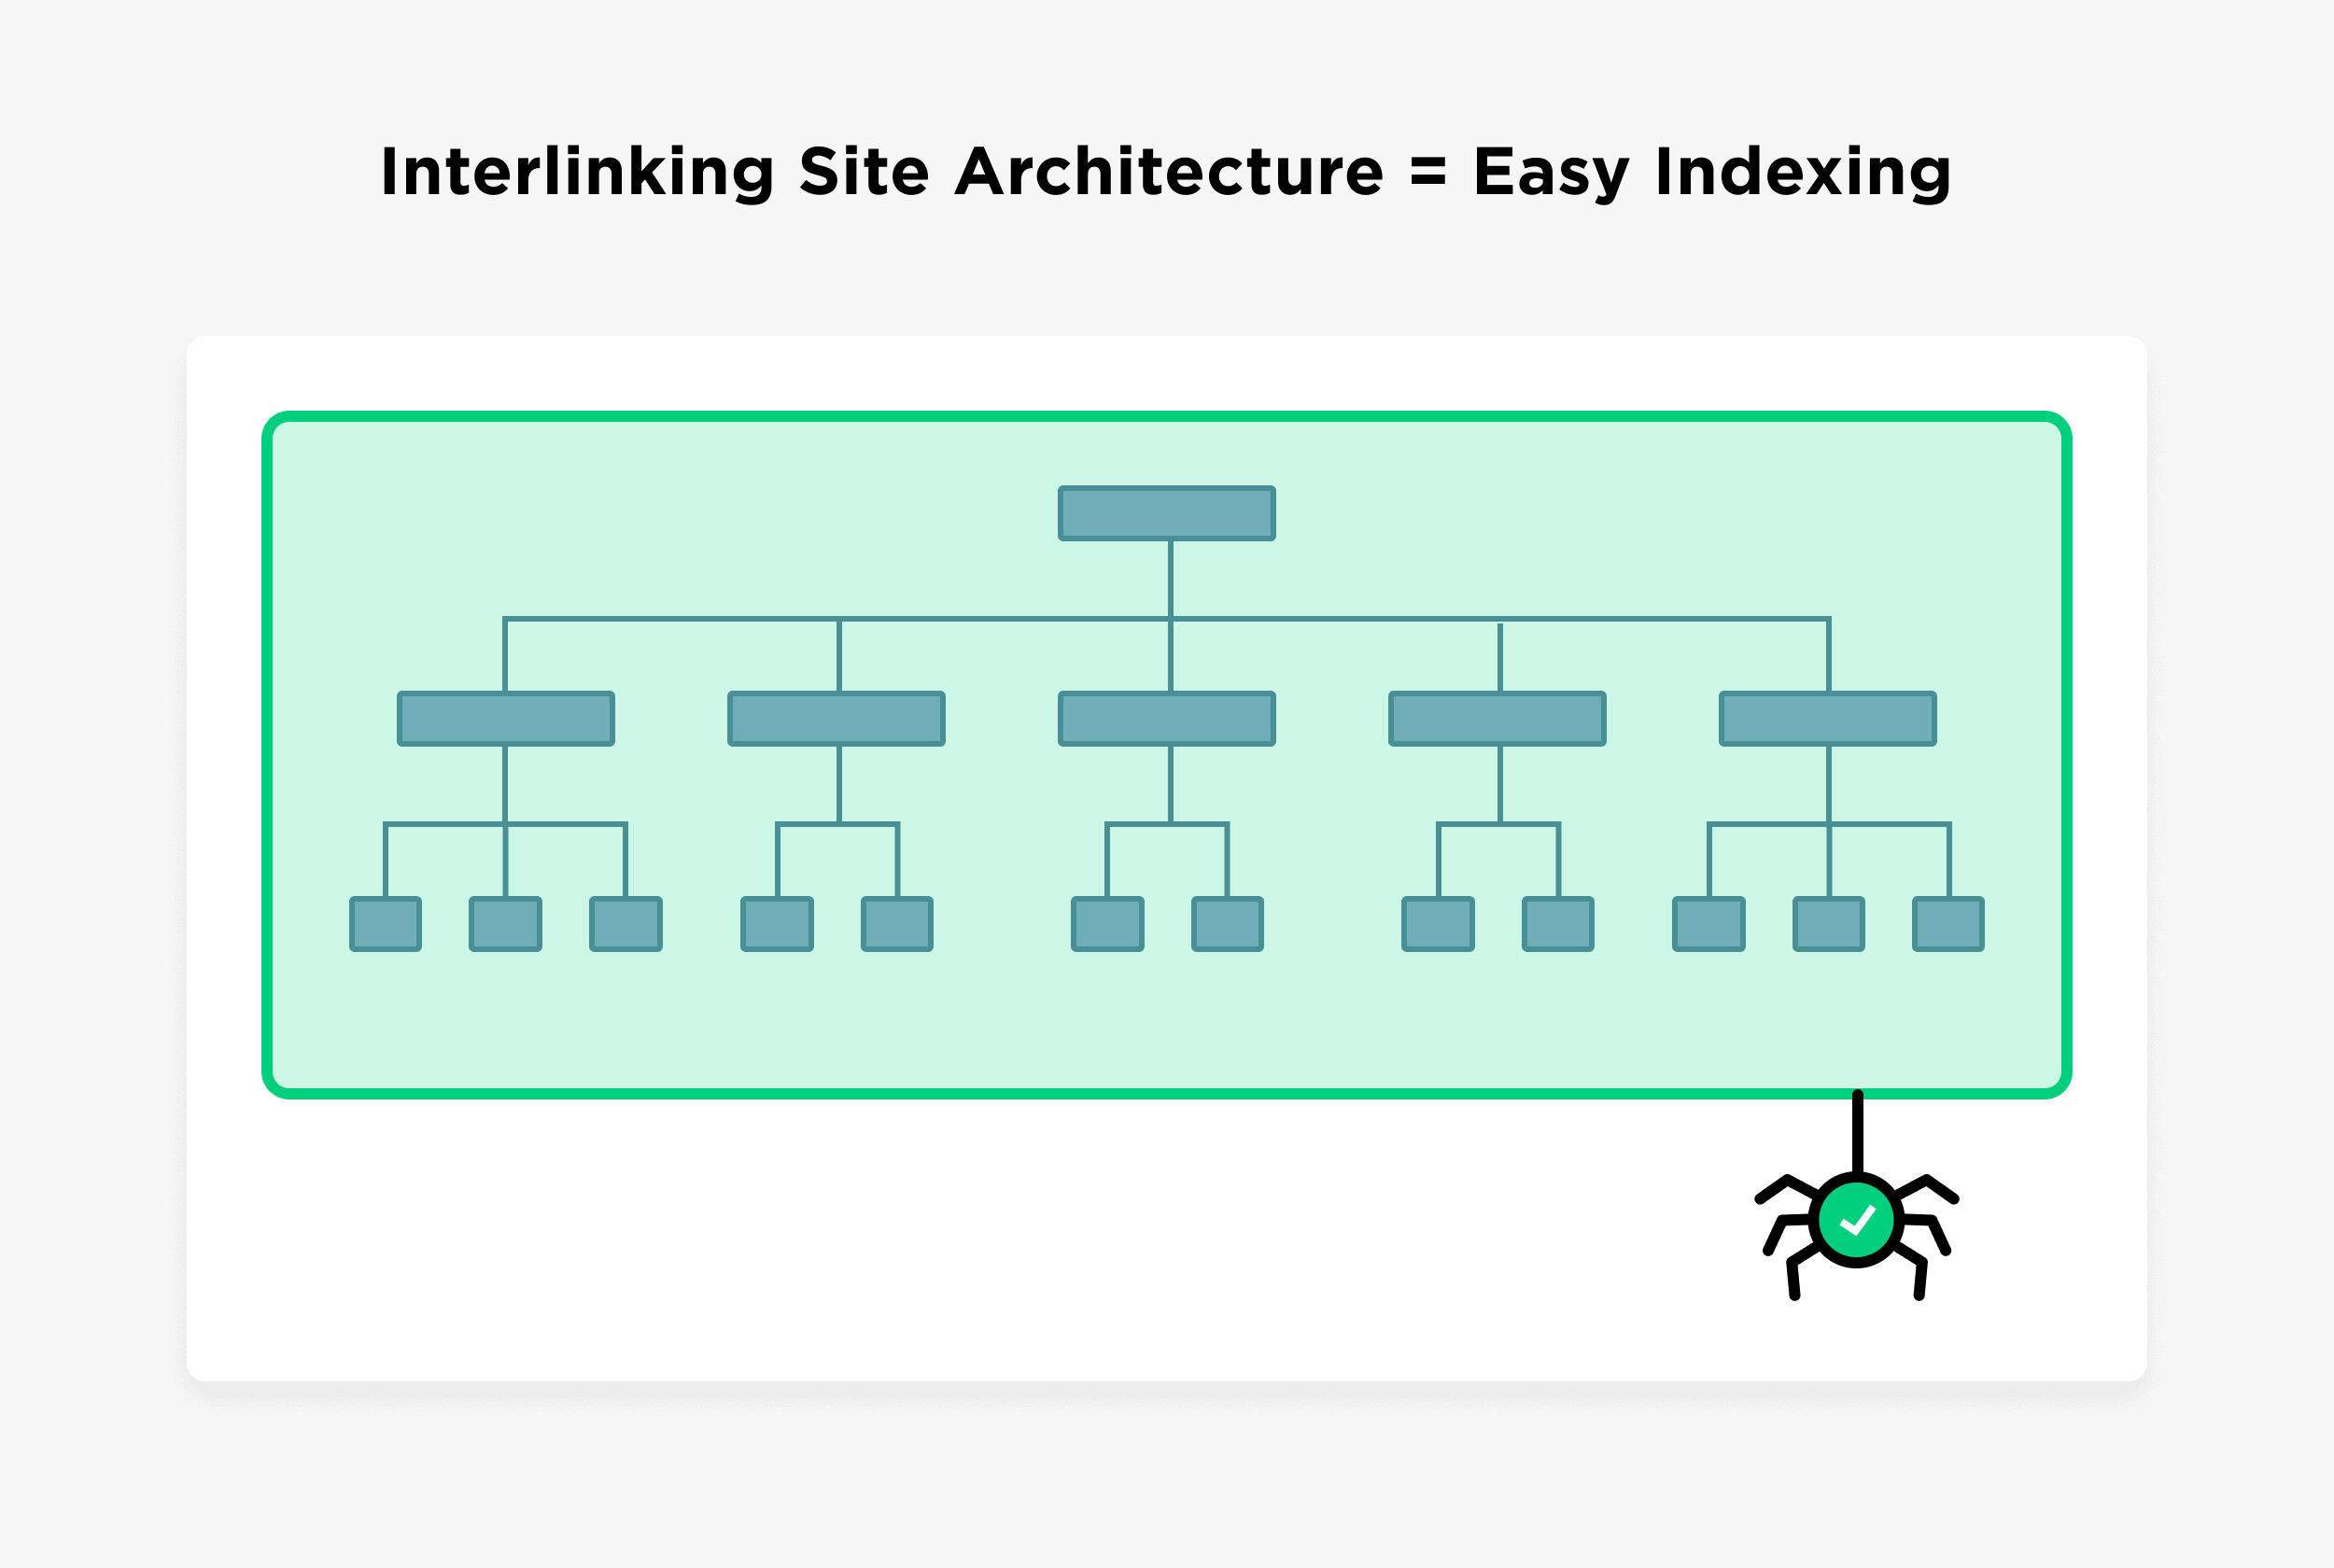 Interlinking Site Architecture Equals Easy Indexing